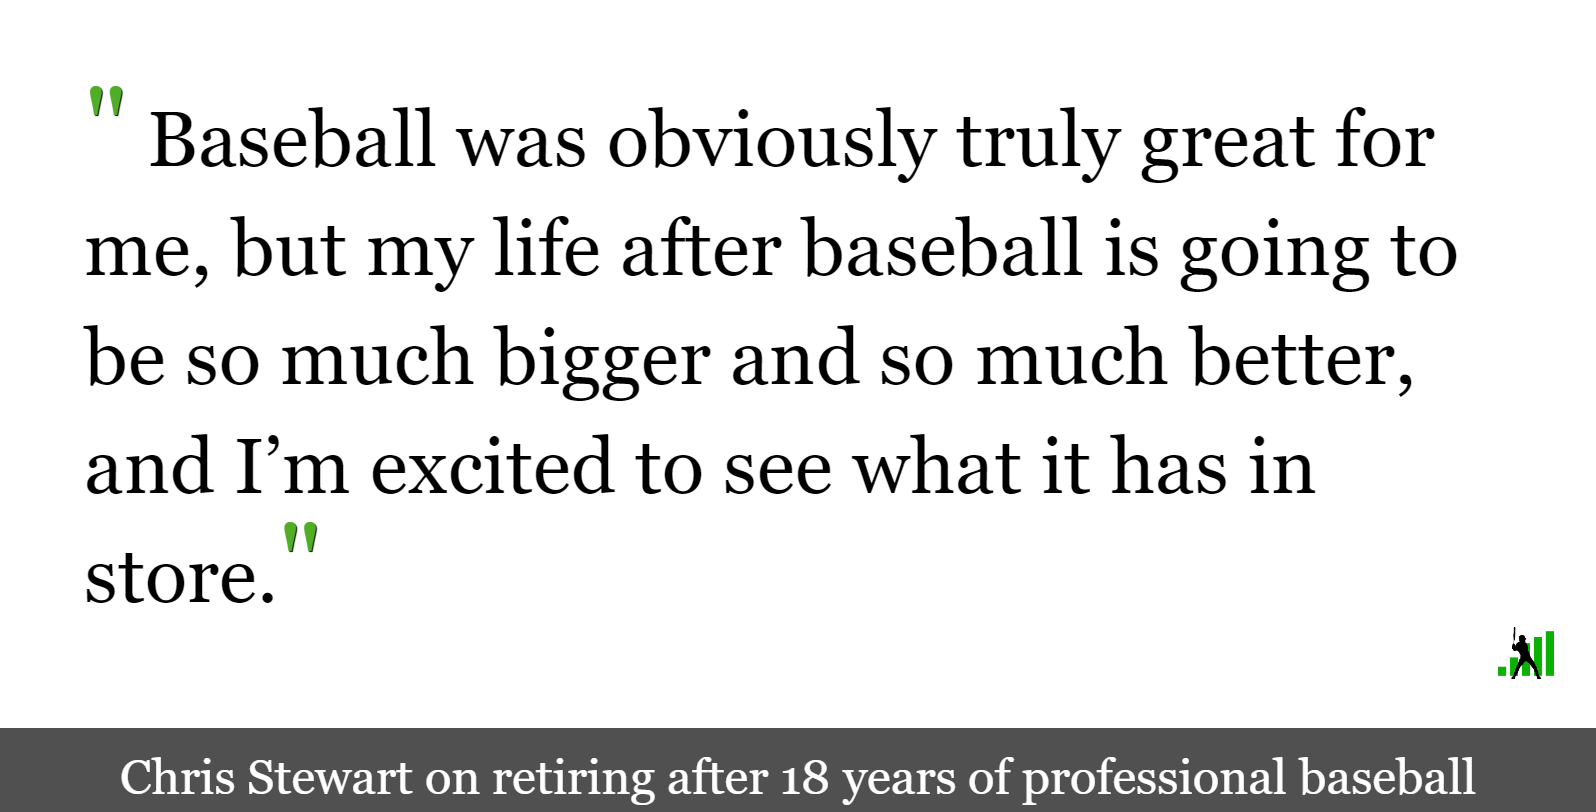 Chris Stewart on His Catching Career and Hanging up the Spikes